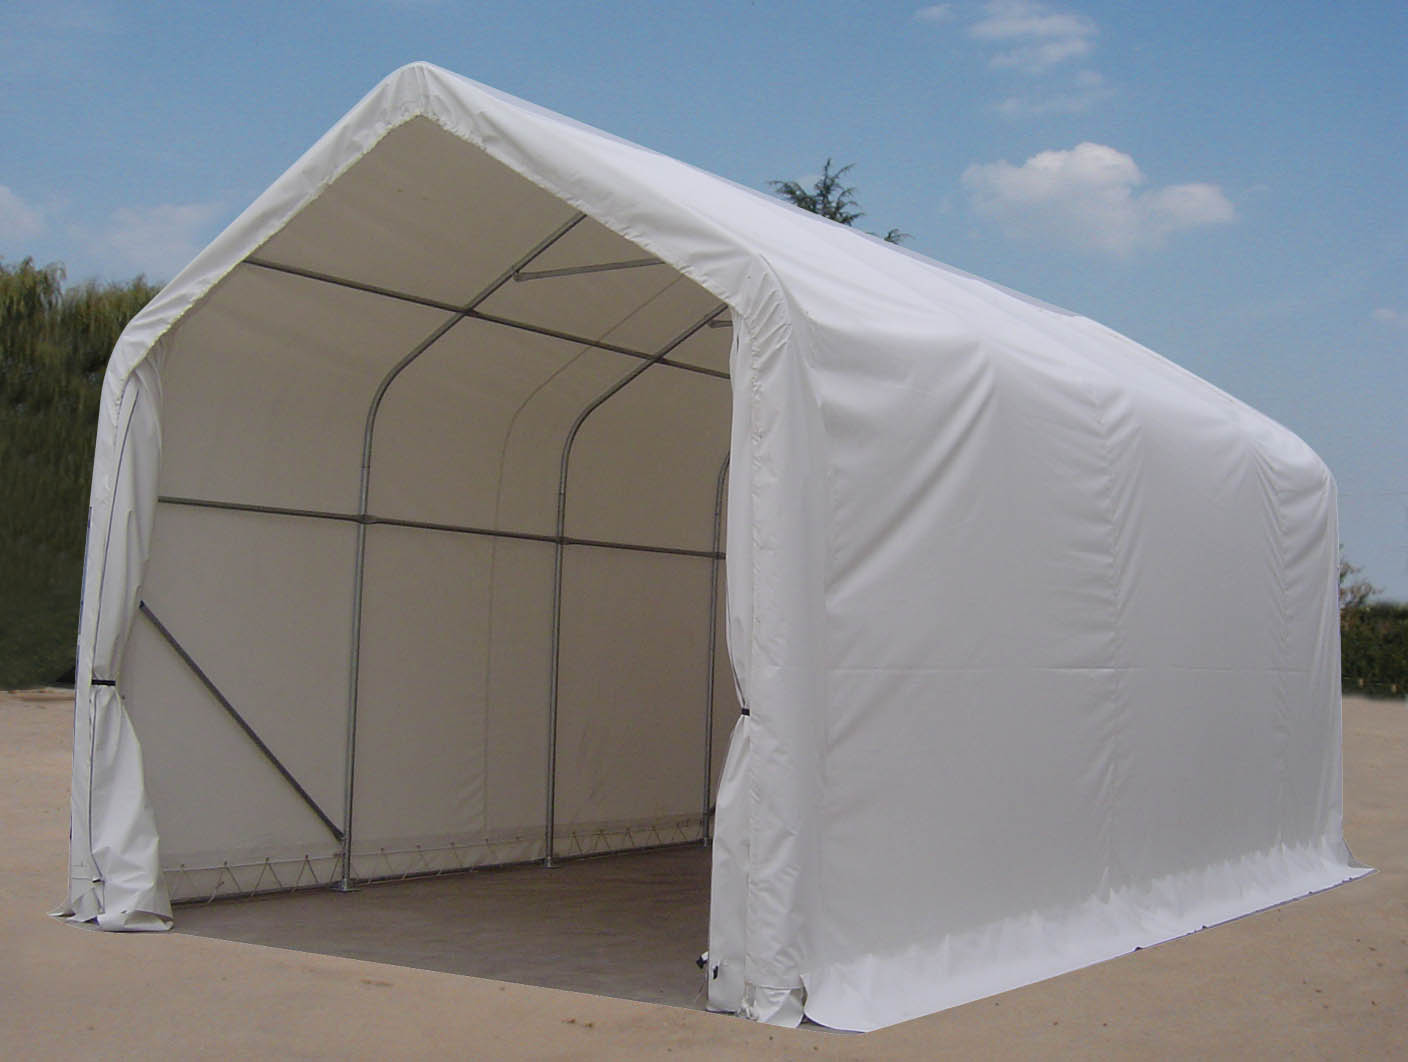 Shelters Portable Garages Tent Sheds Outdoor Storage Large Make Your Own Beautiful  HD Wallpapers, Images Over 1000+ [ralydesign.ml]